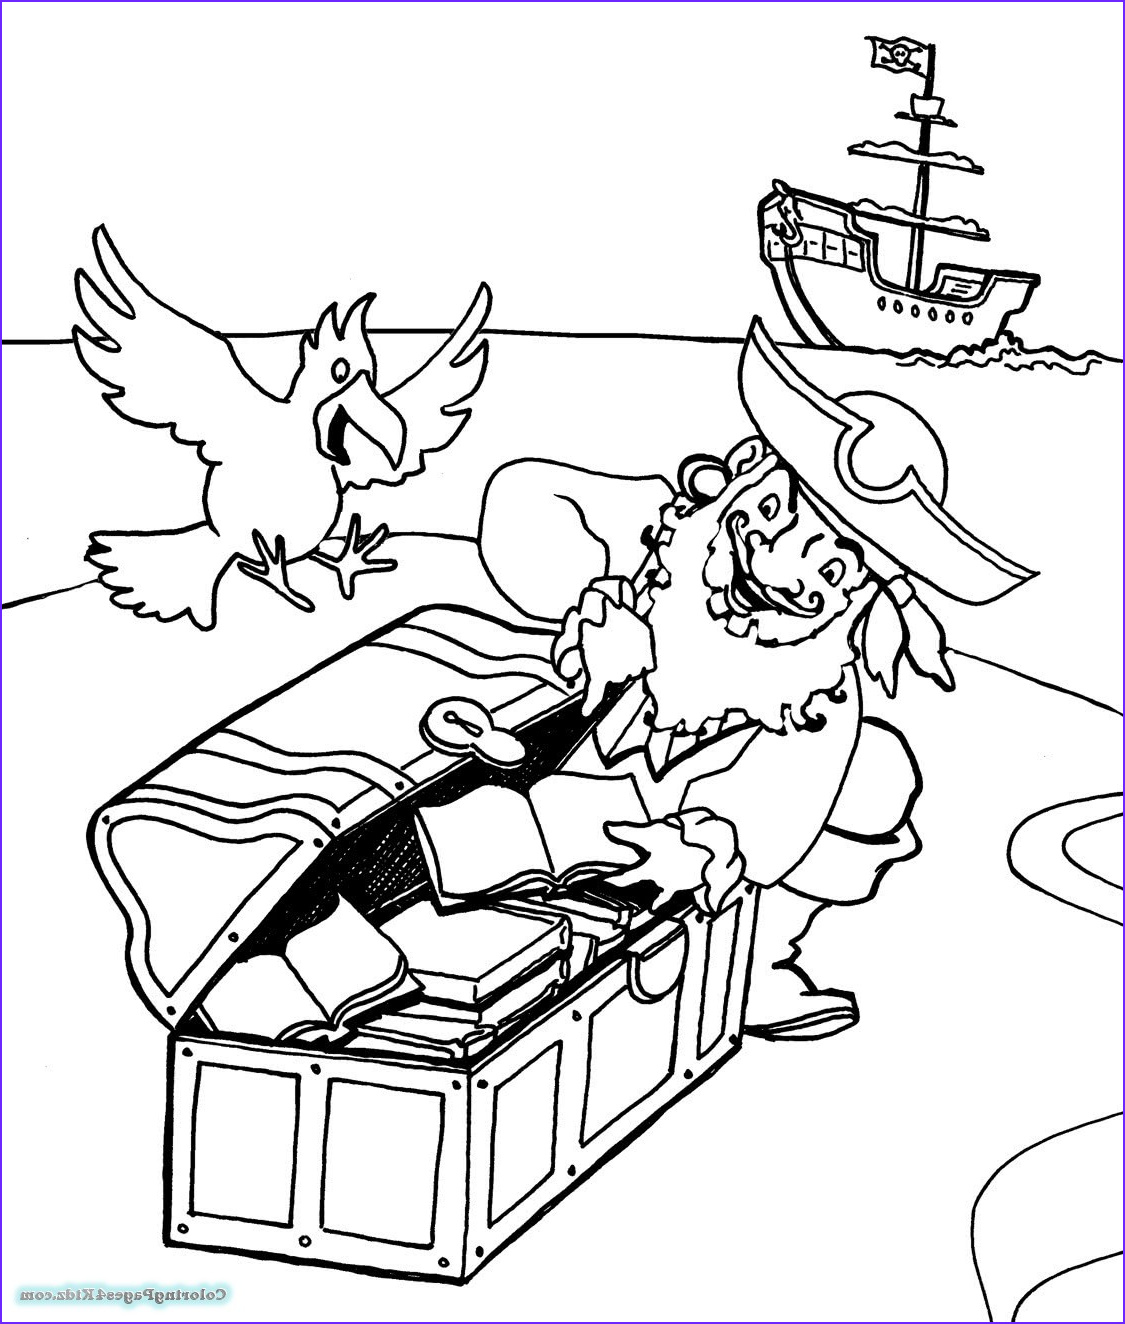 Pirate Coloring Page for Adults Unique Photos Pirate Ship Coloring Pages for Adults